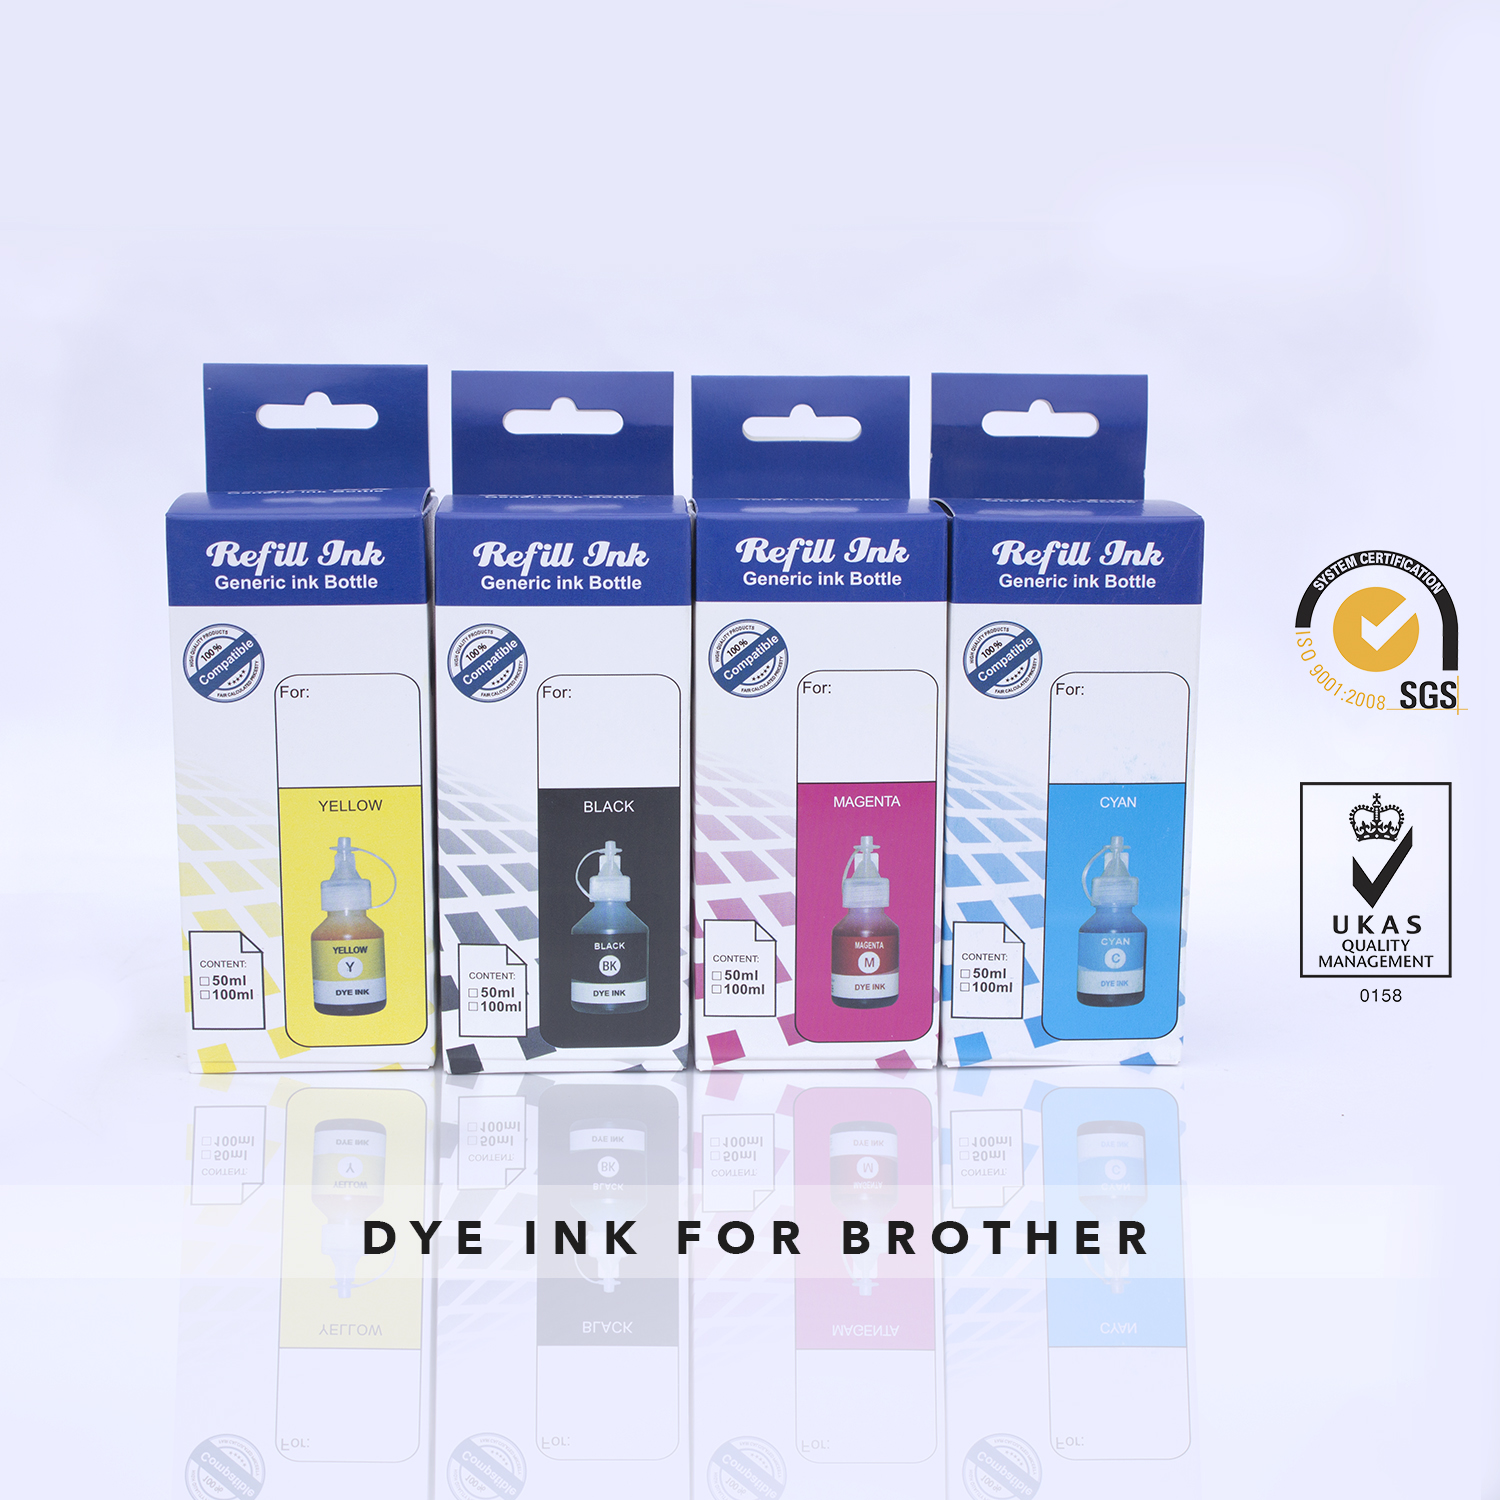 dye ink for brother